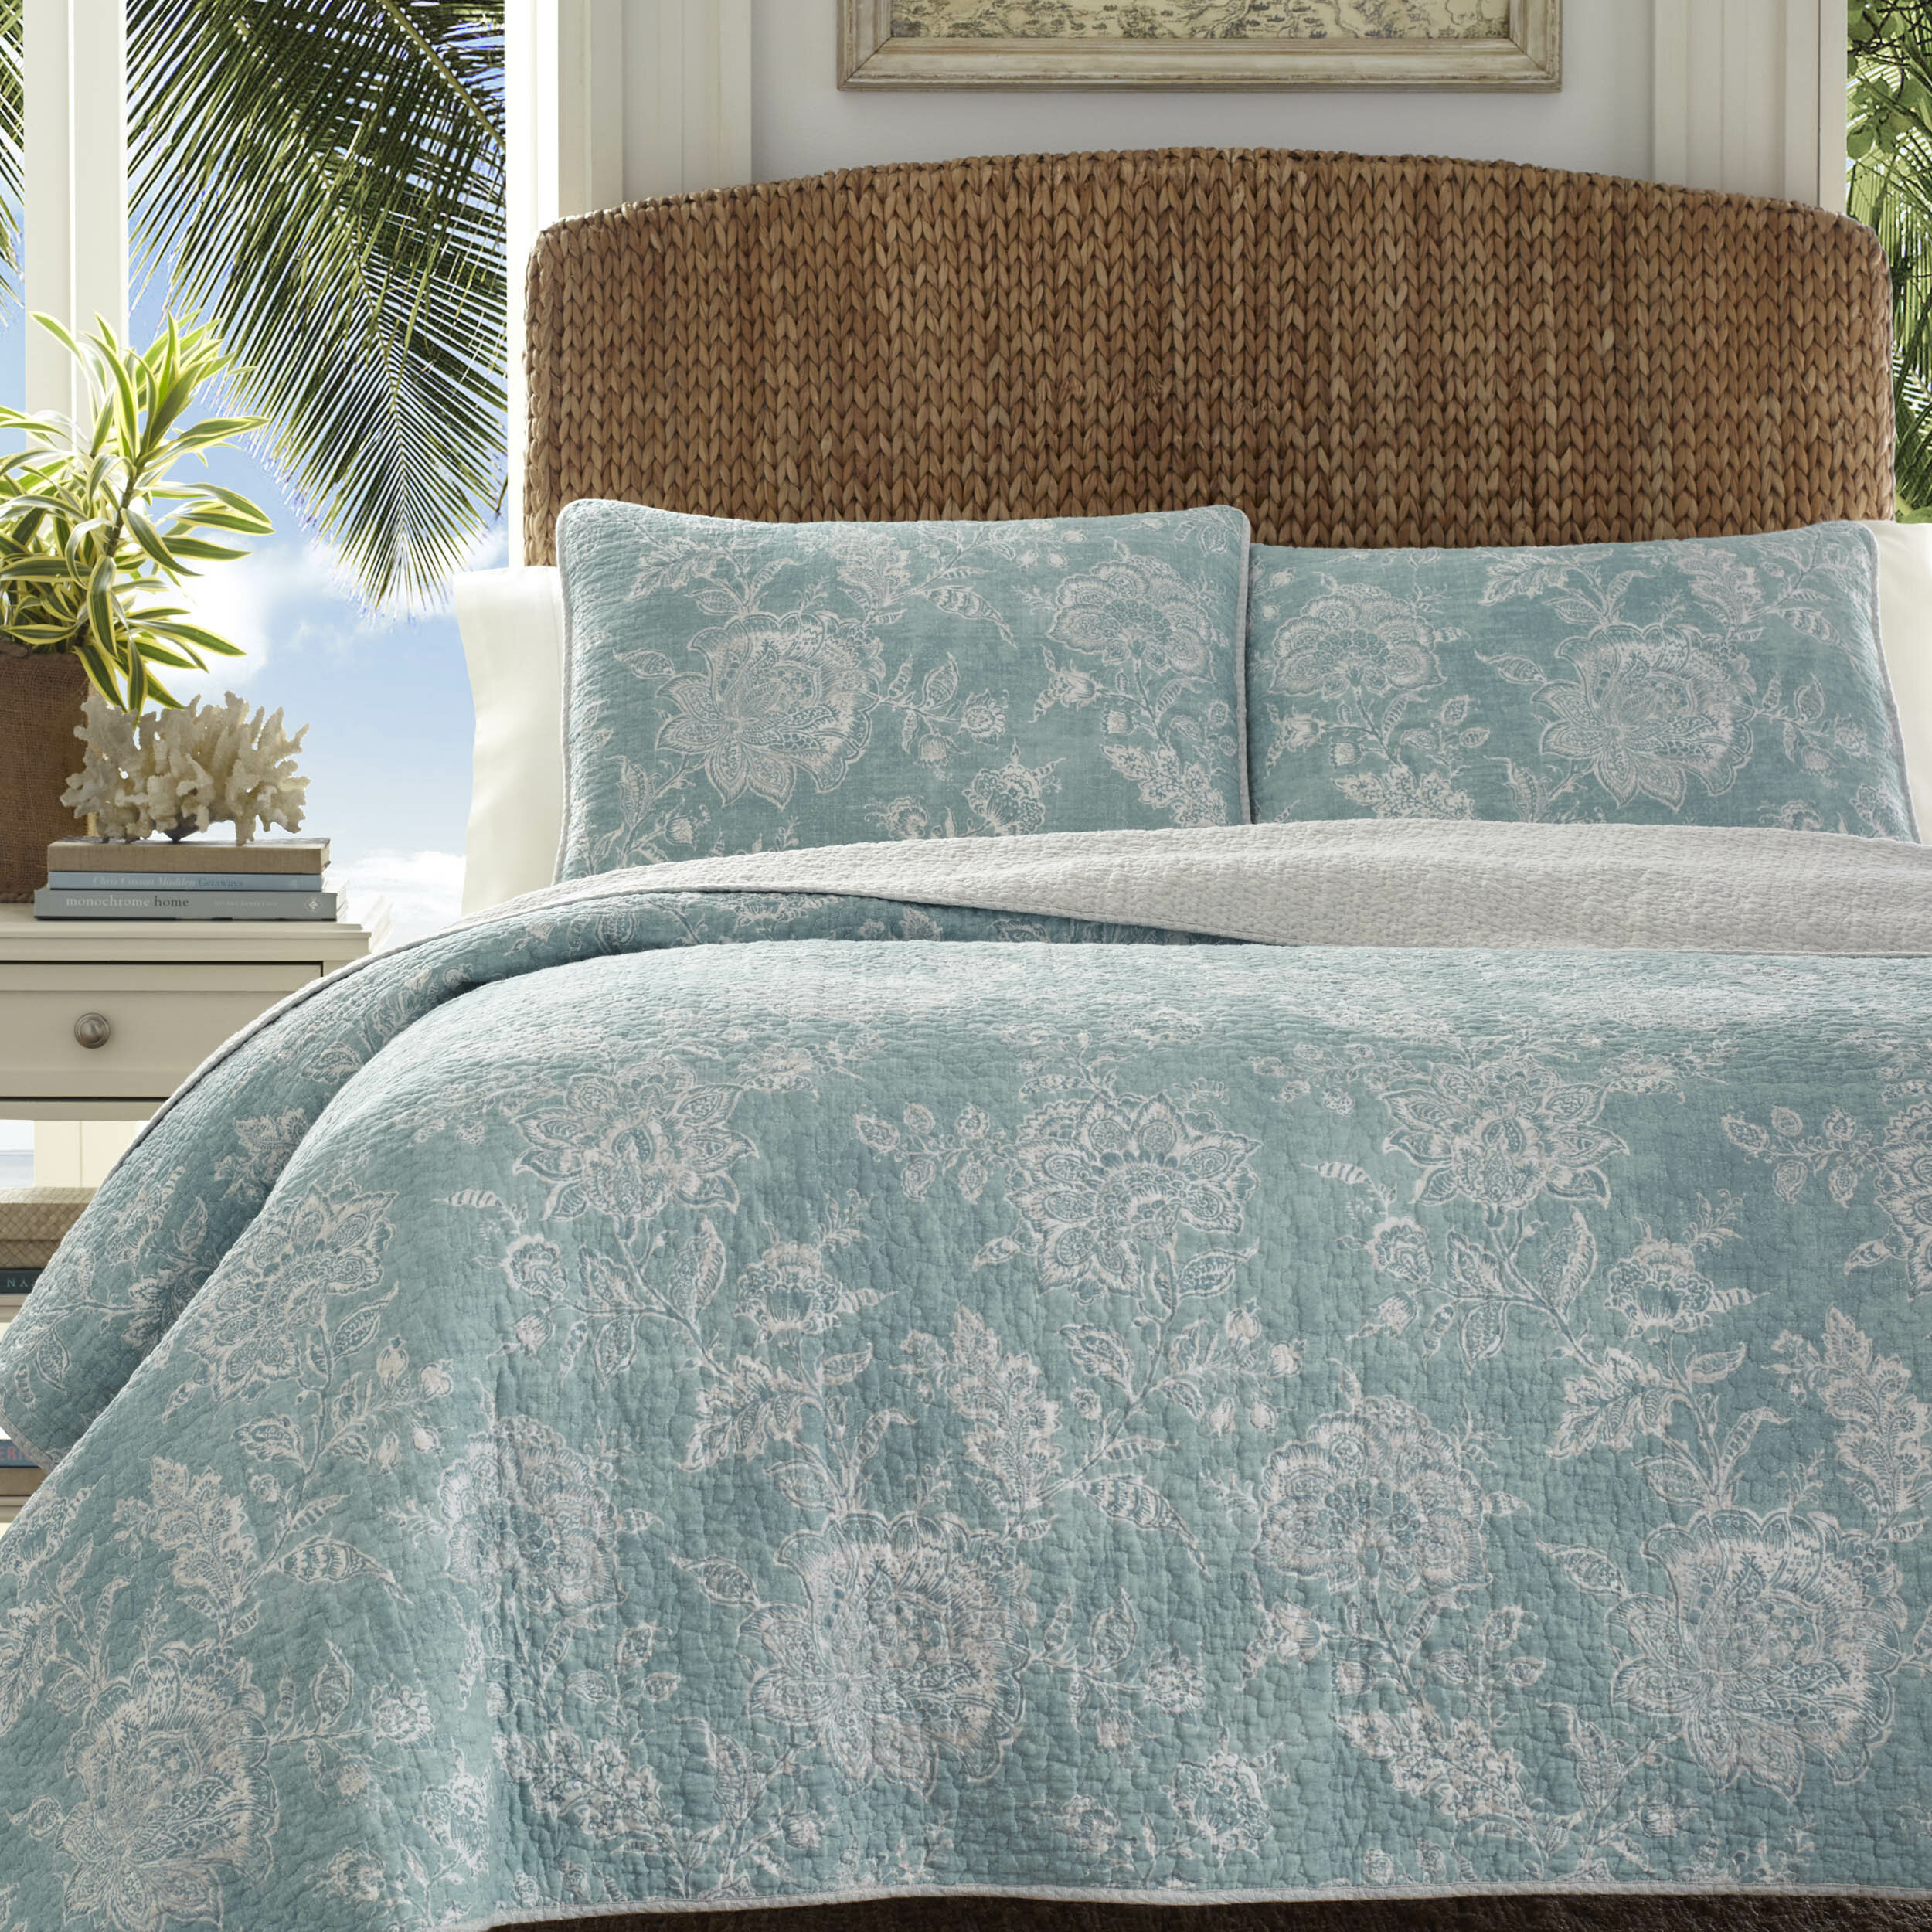 Tommy Bahama Home Tidewater Jacobean Quilt Set By Tommy Bahama Bedding |  Birch Lane